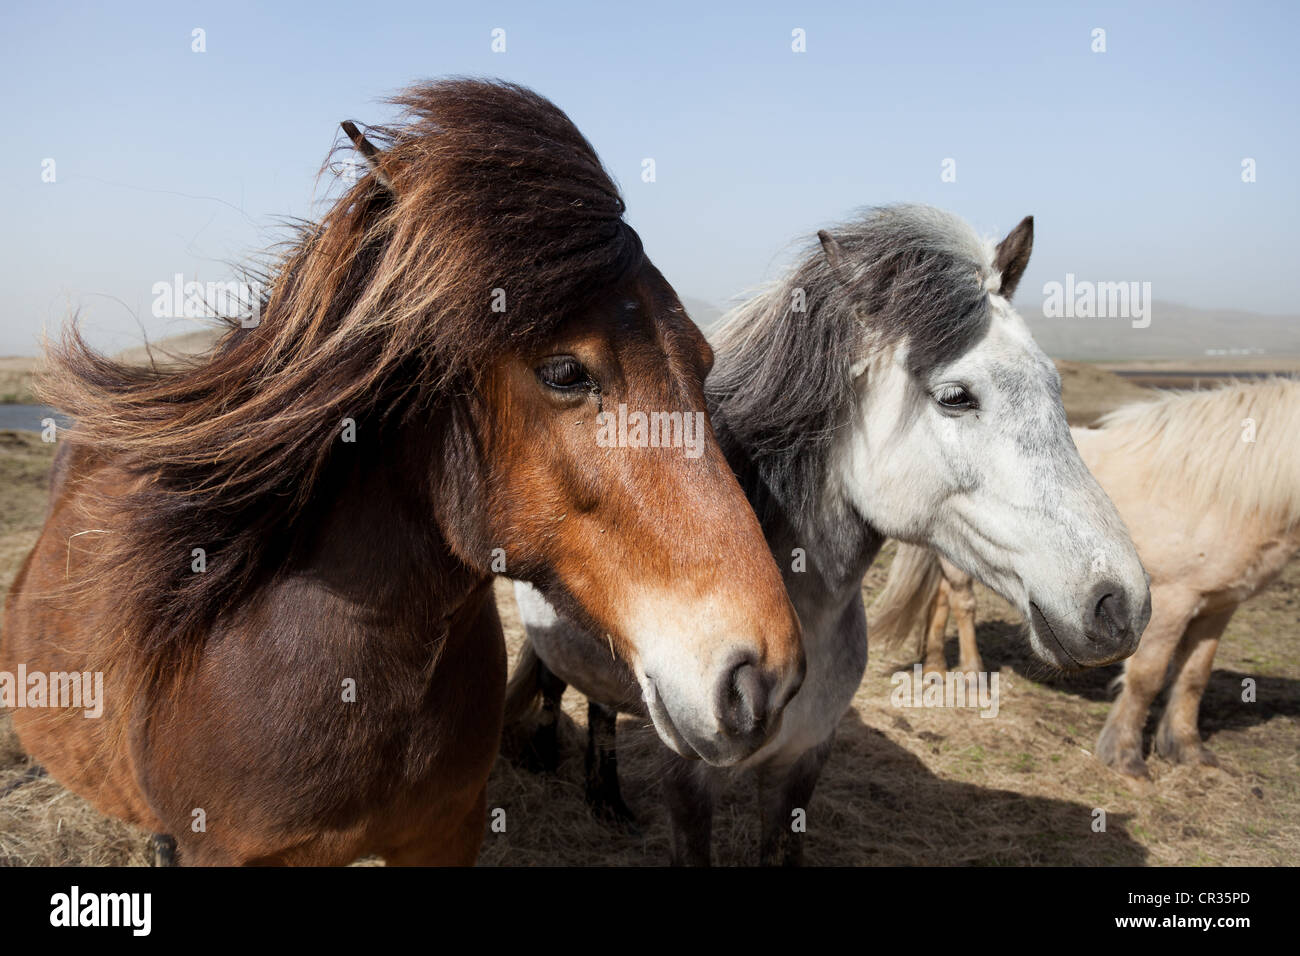 Brown and white Icelandic horses facing in the same direction in a field, Iceland, Scandinavia - Stock Image